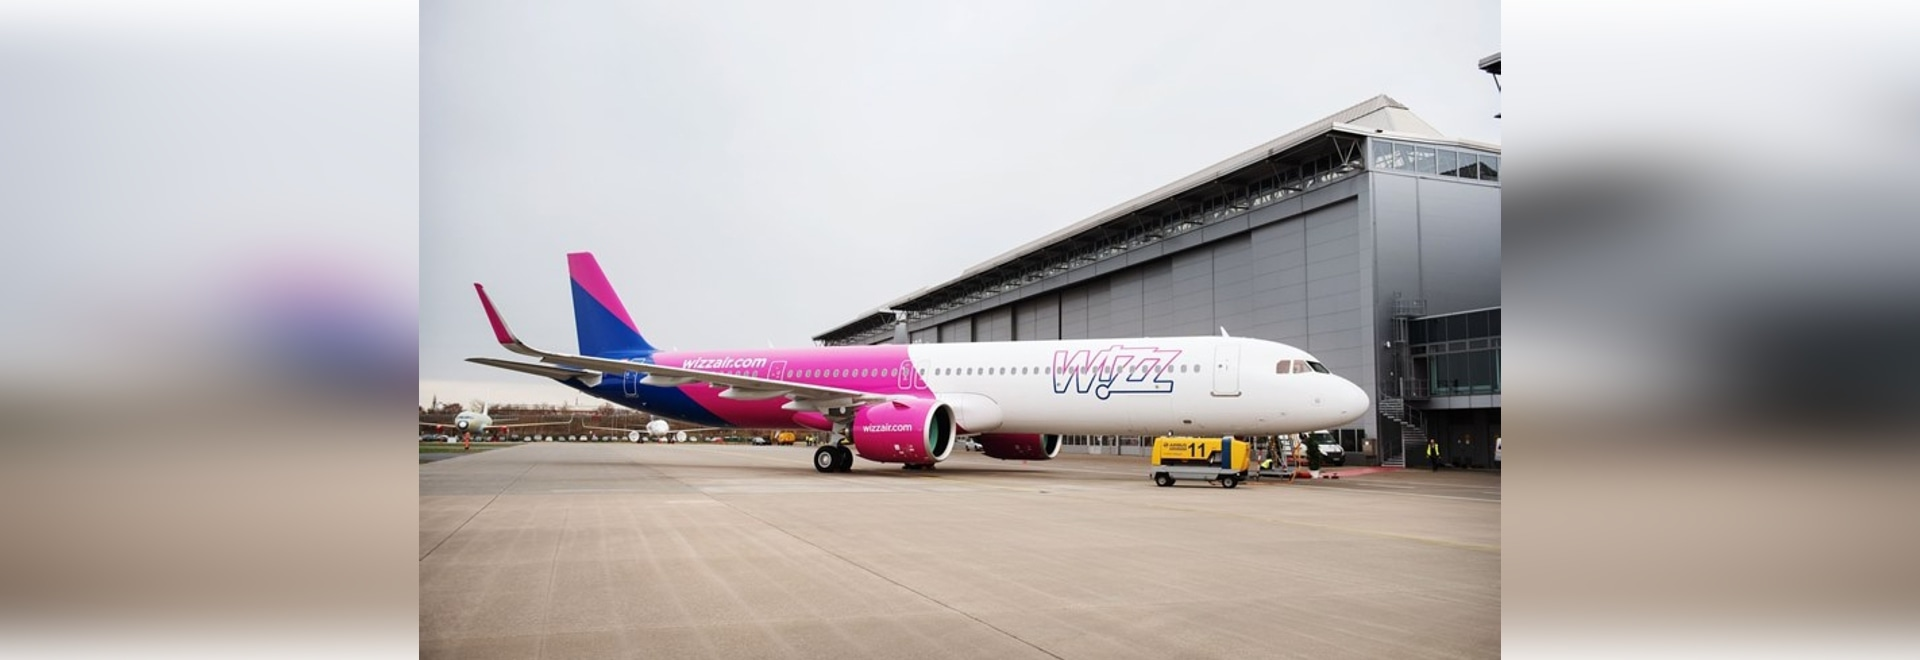 Pratt & Whitney to power Wizz Air's 166 Airbus A320neo aircraft